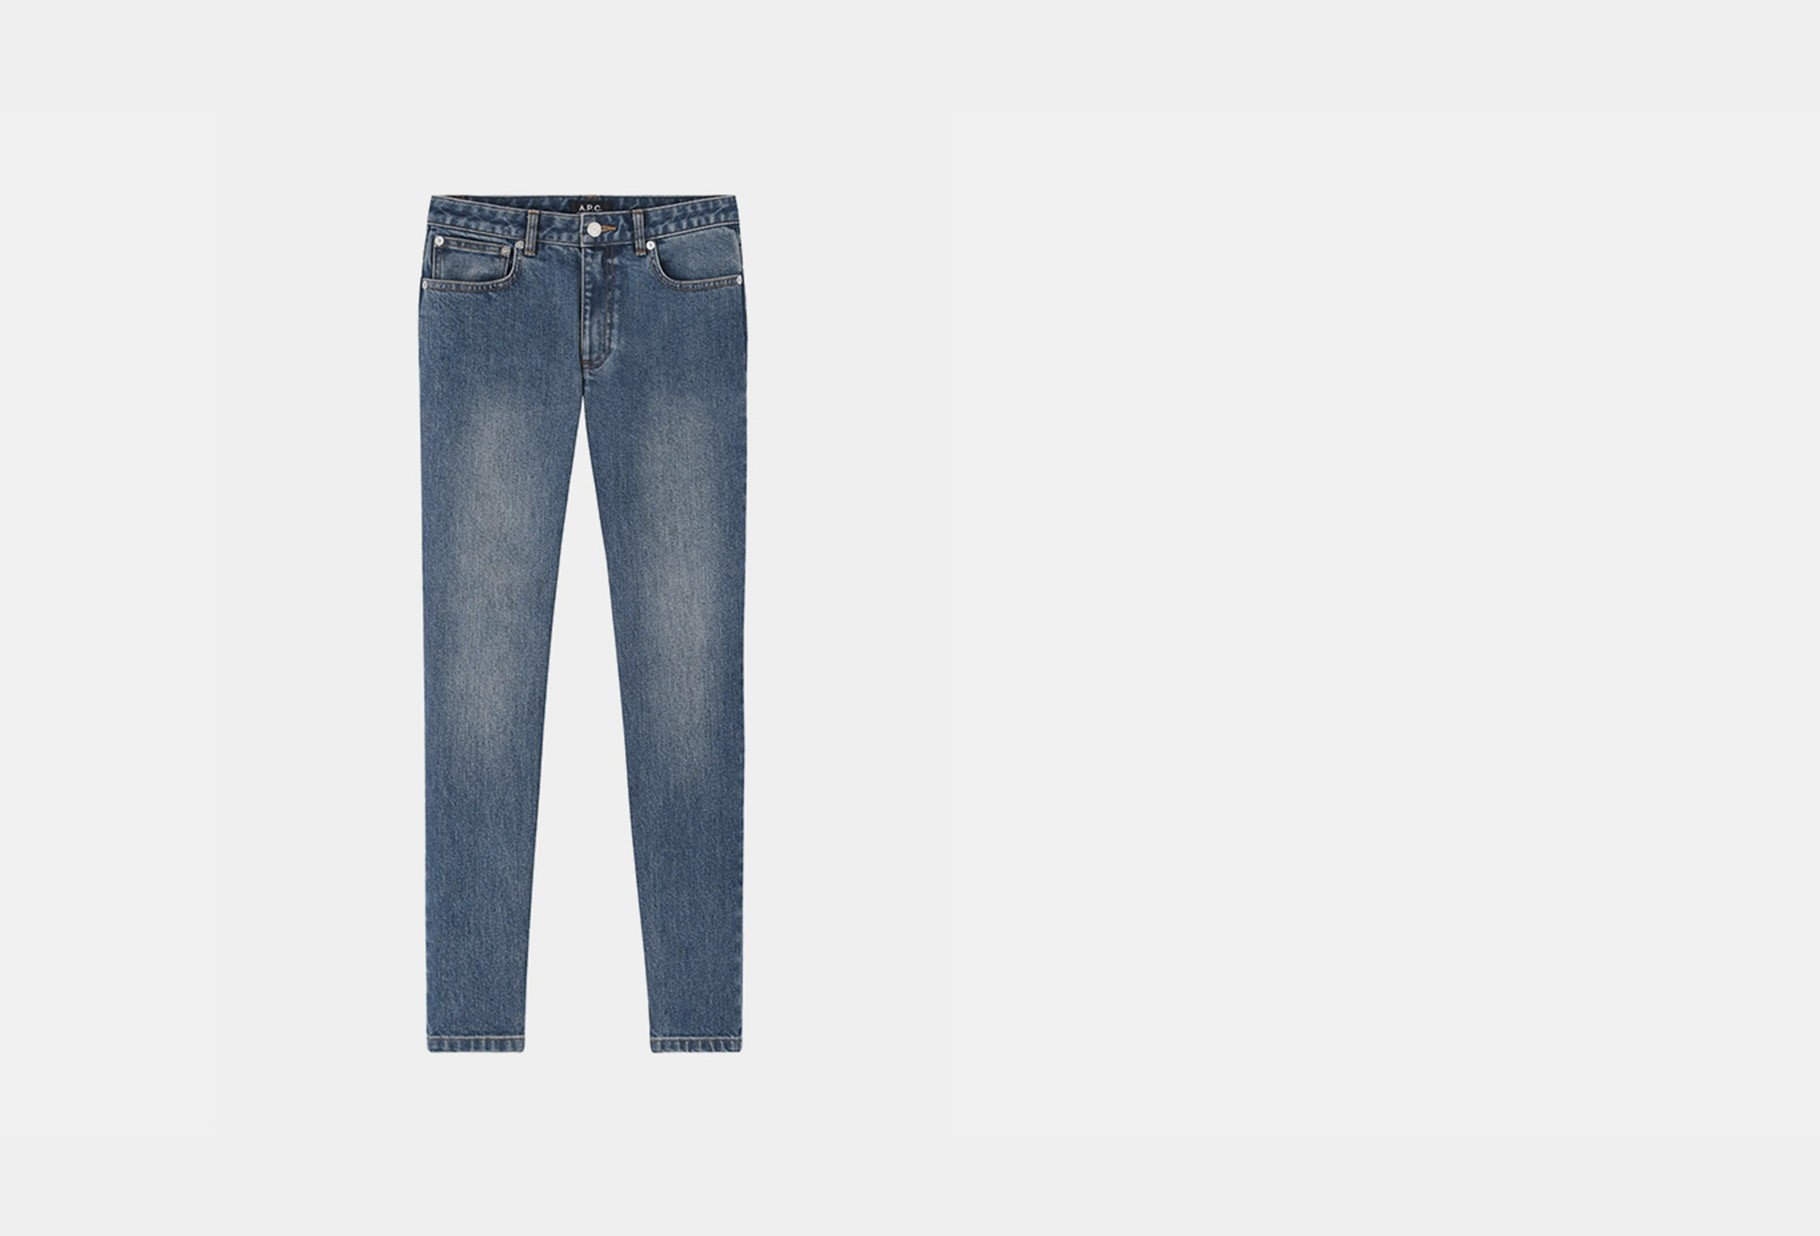 A.P.C. FOR WOMAN / High standard Indigo delave